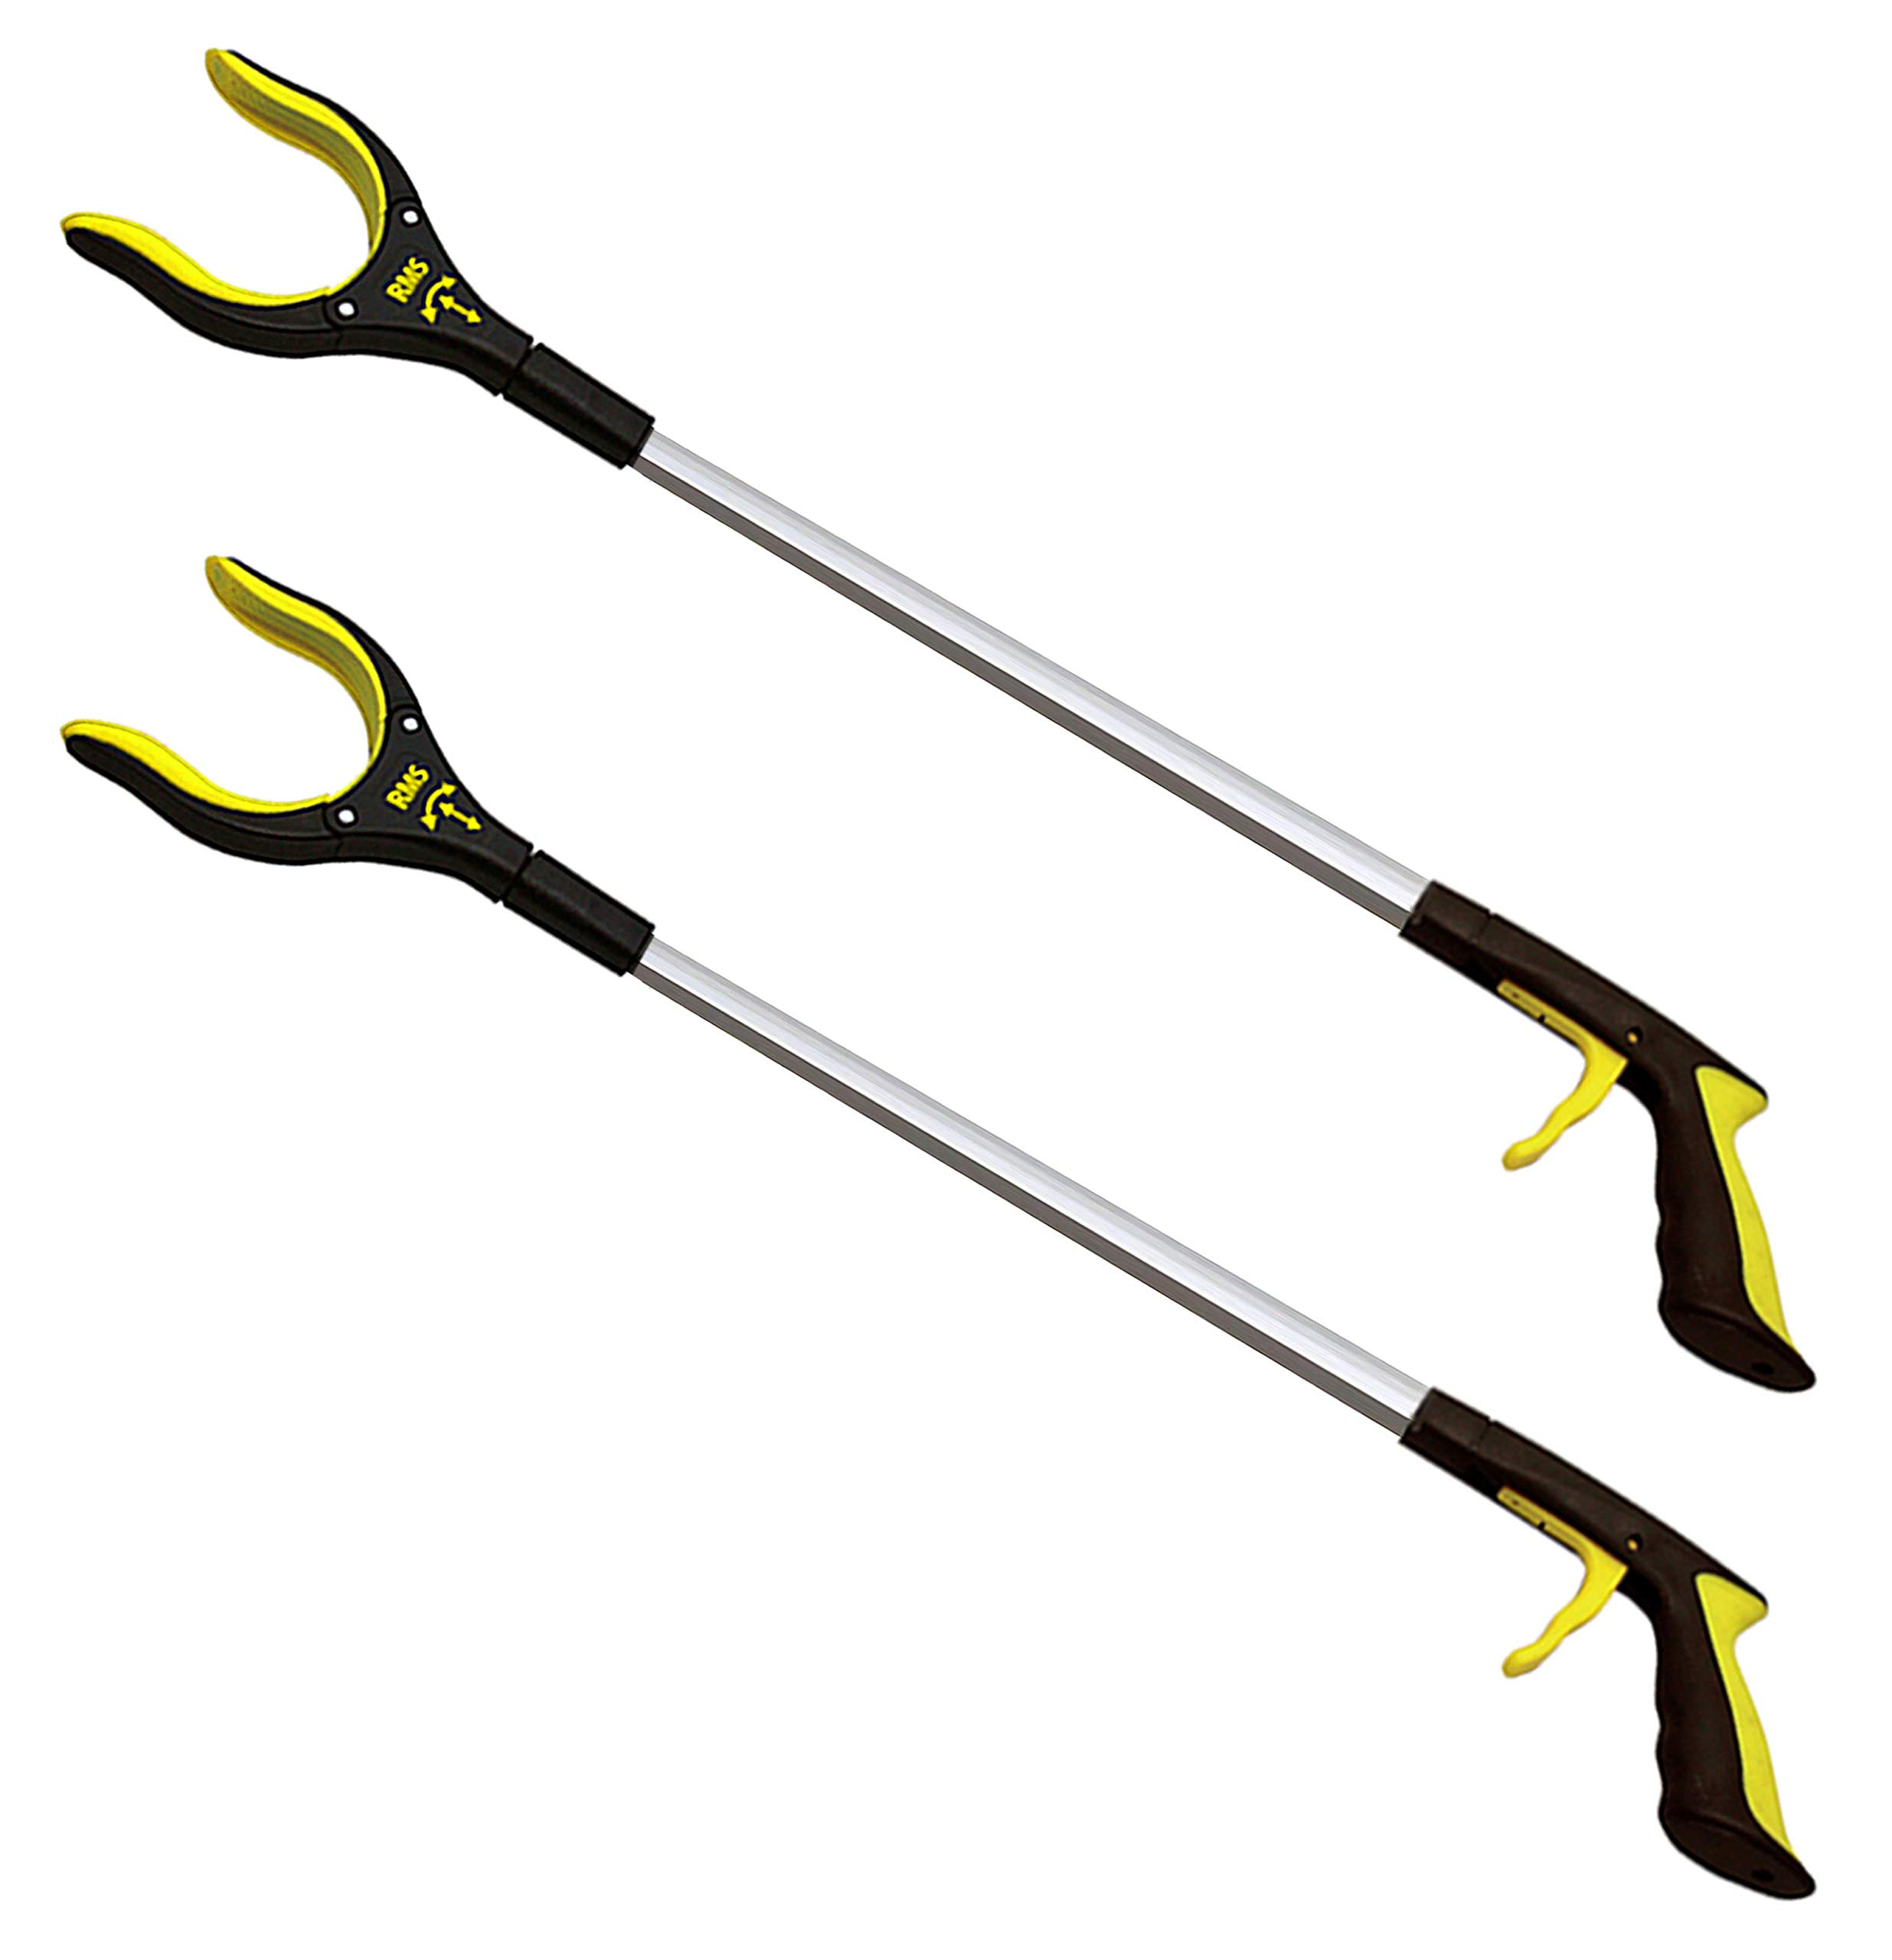 RMS 2-Pack 32 Inch Extra Long Grabber Reacher with Rotating Gripper - Mobility Aid Reaching Assist Tool, Trash Picker, Litter Pick Up, Garden Nabber, Arm Extension (Yellow) by RMS Royal Medical Solutions, Inc.